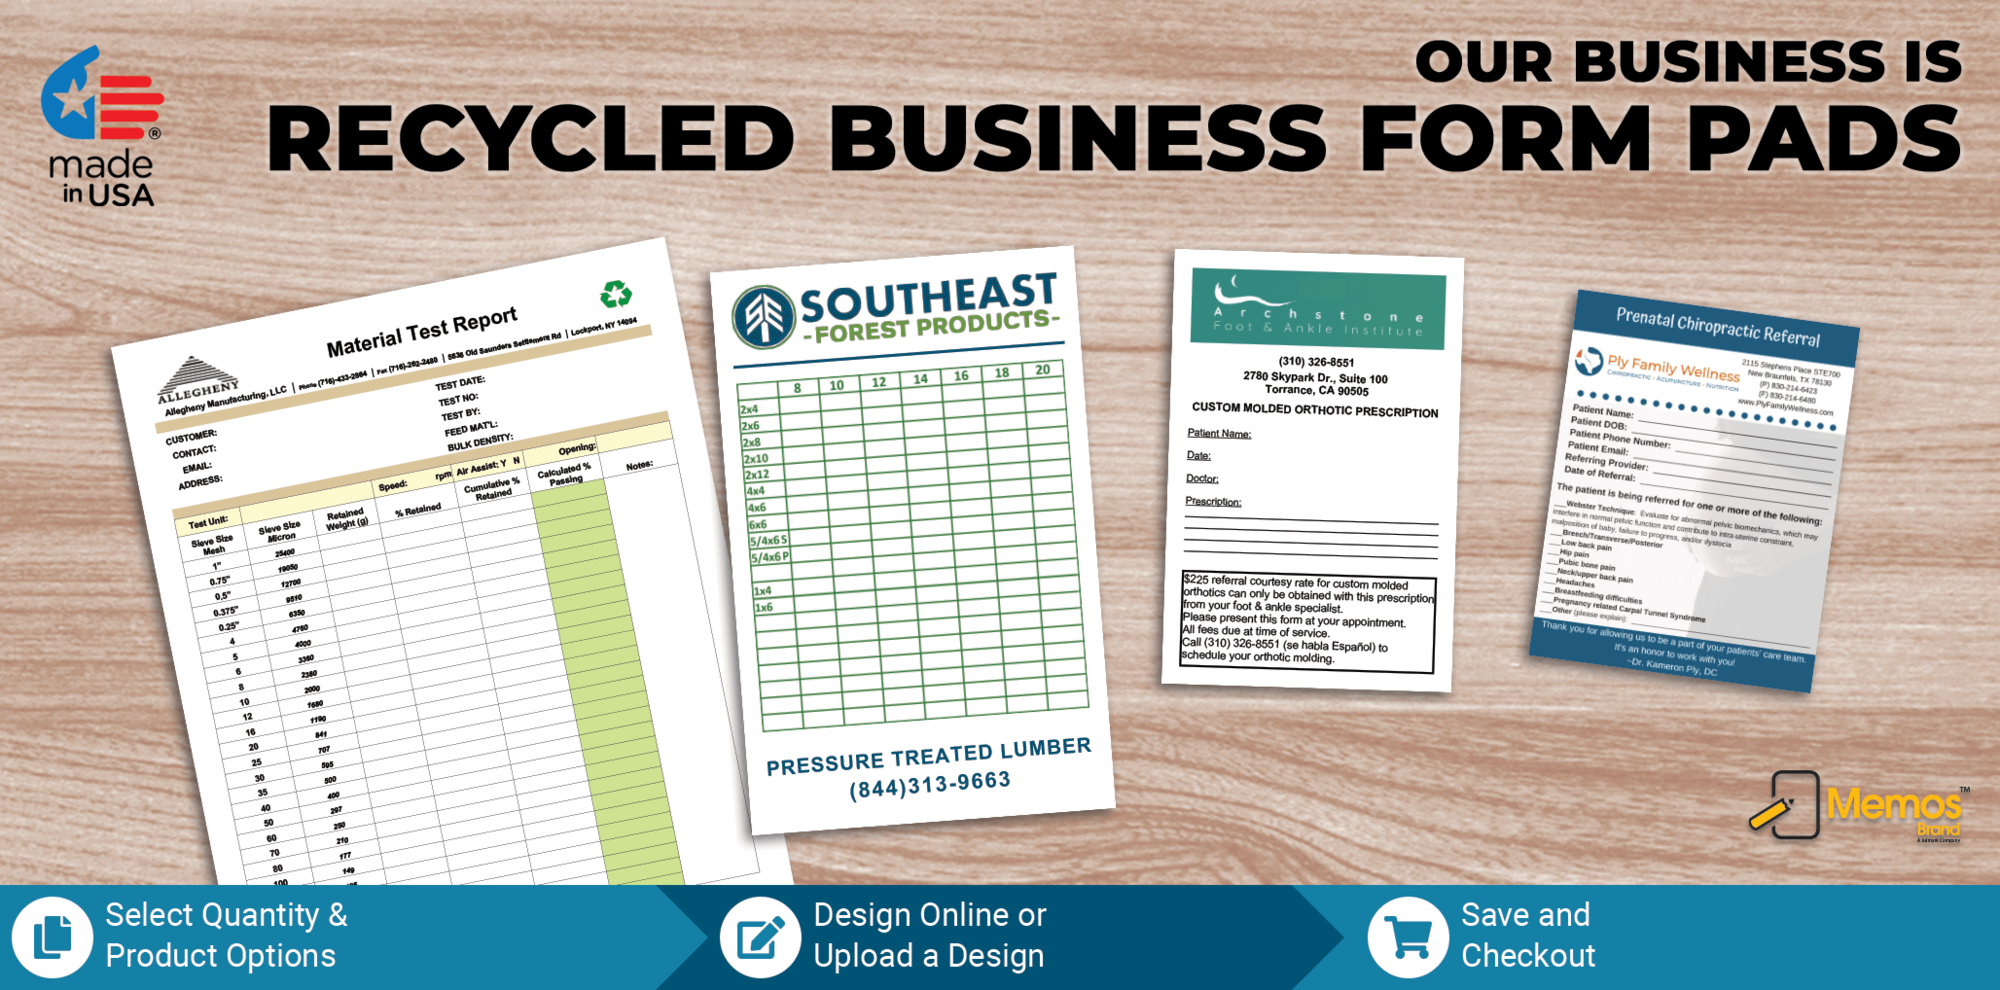 https://printpps.com/images/products_gallery_images/Banner_BusinessForms-RecycledFiber_ProdFeat_Cover32.png